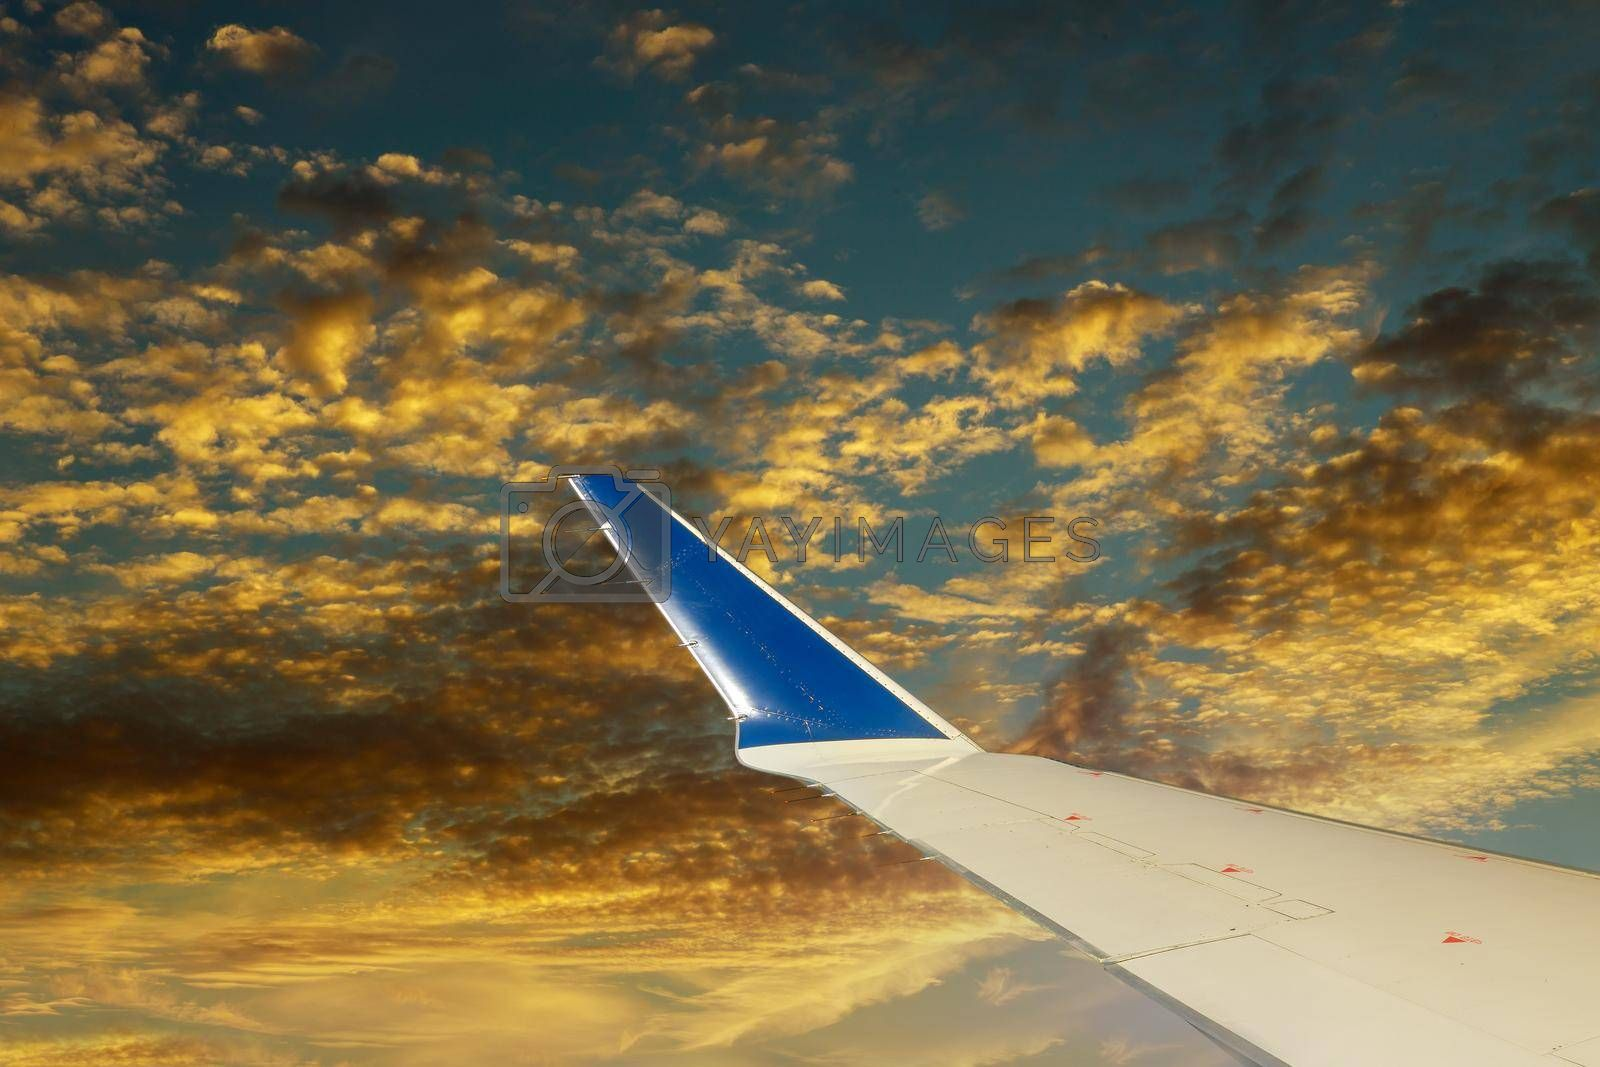 Clouds in the sky as seen evening majestic sunset a wing of an airplane flying